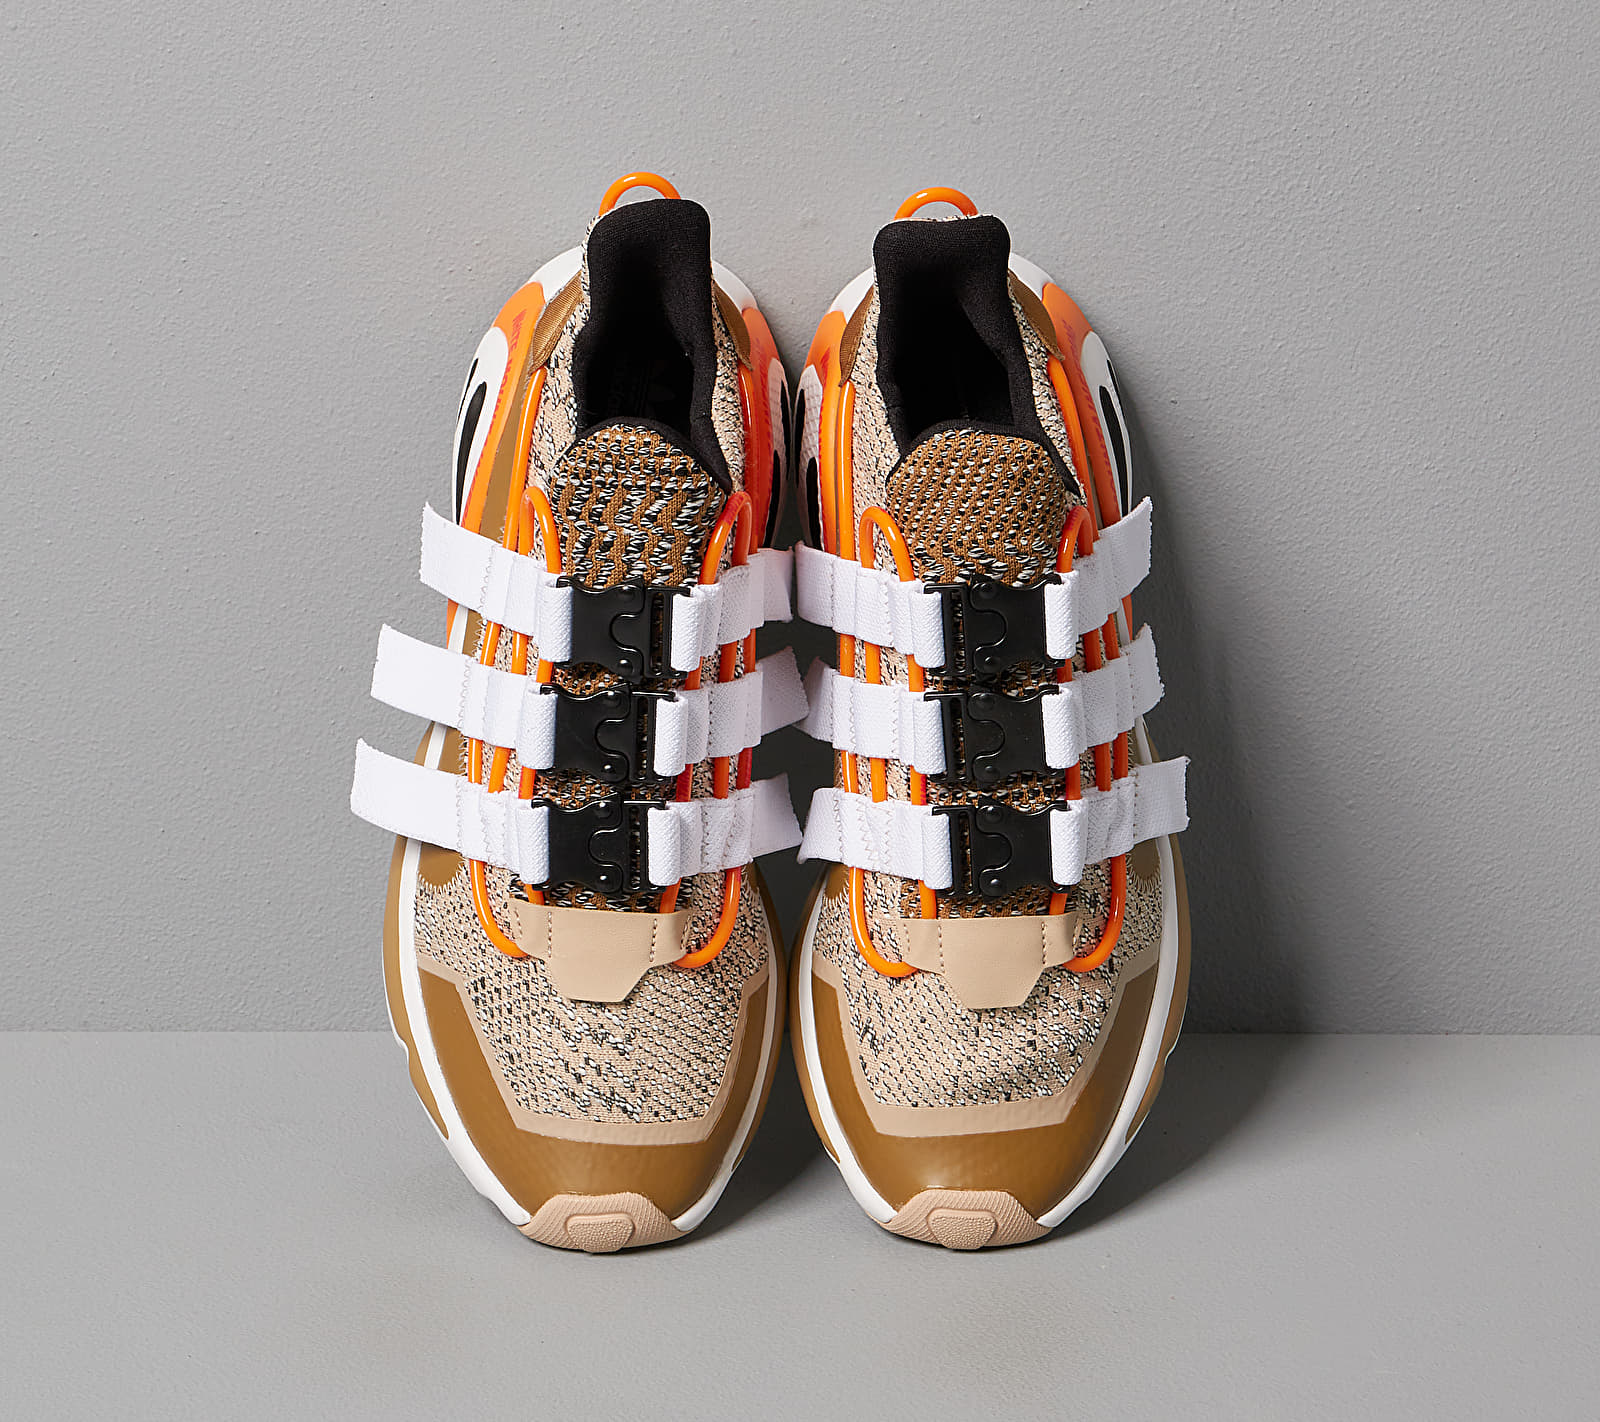 adidas x White Mountaineering LXCON Supplier Colour/ Ftwr White/ Core Black, Brown